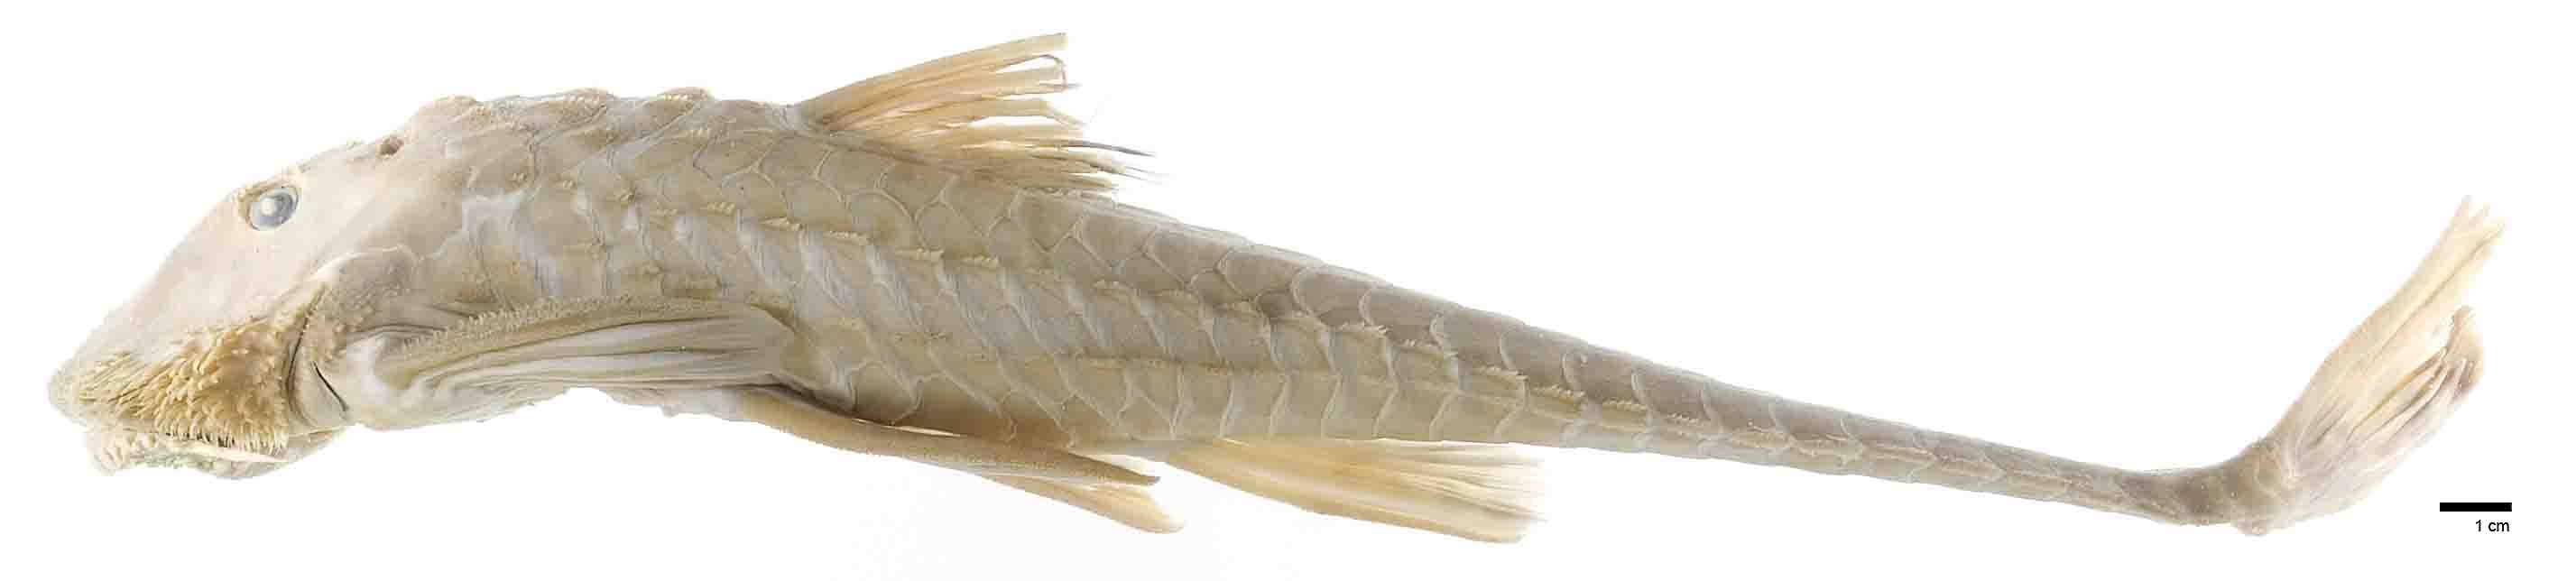 Image of loricariid catfish